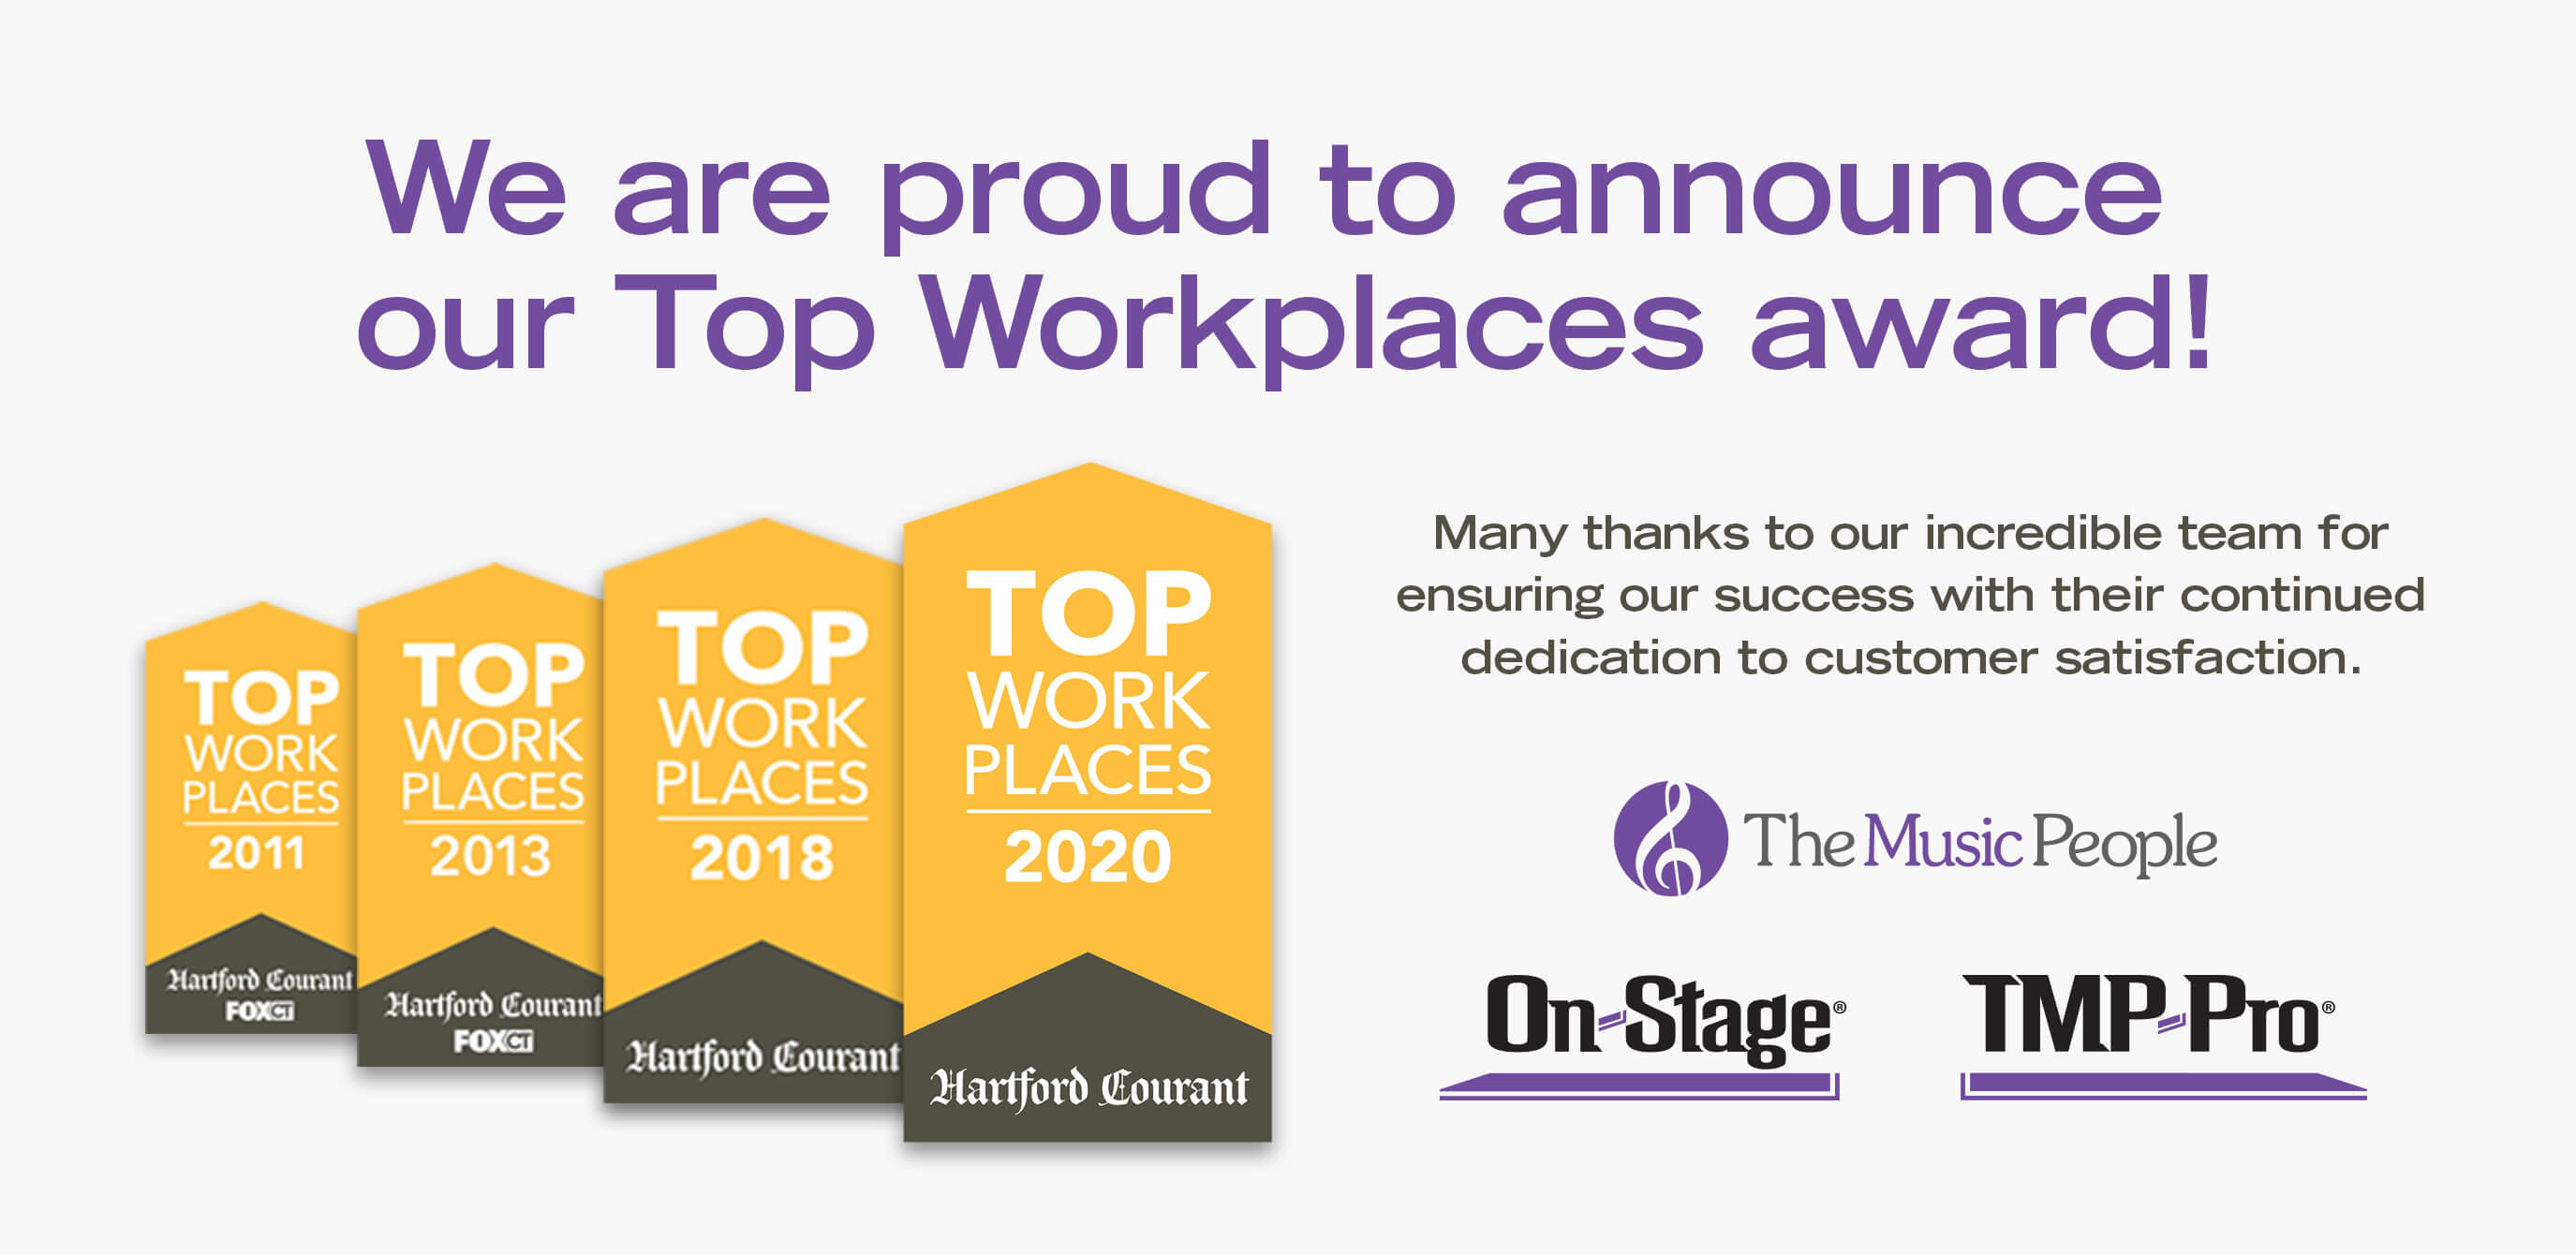 The Music People Recognized as Top Workplace for 2020